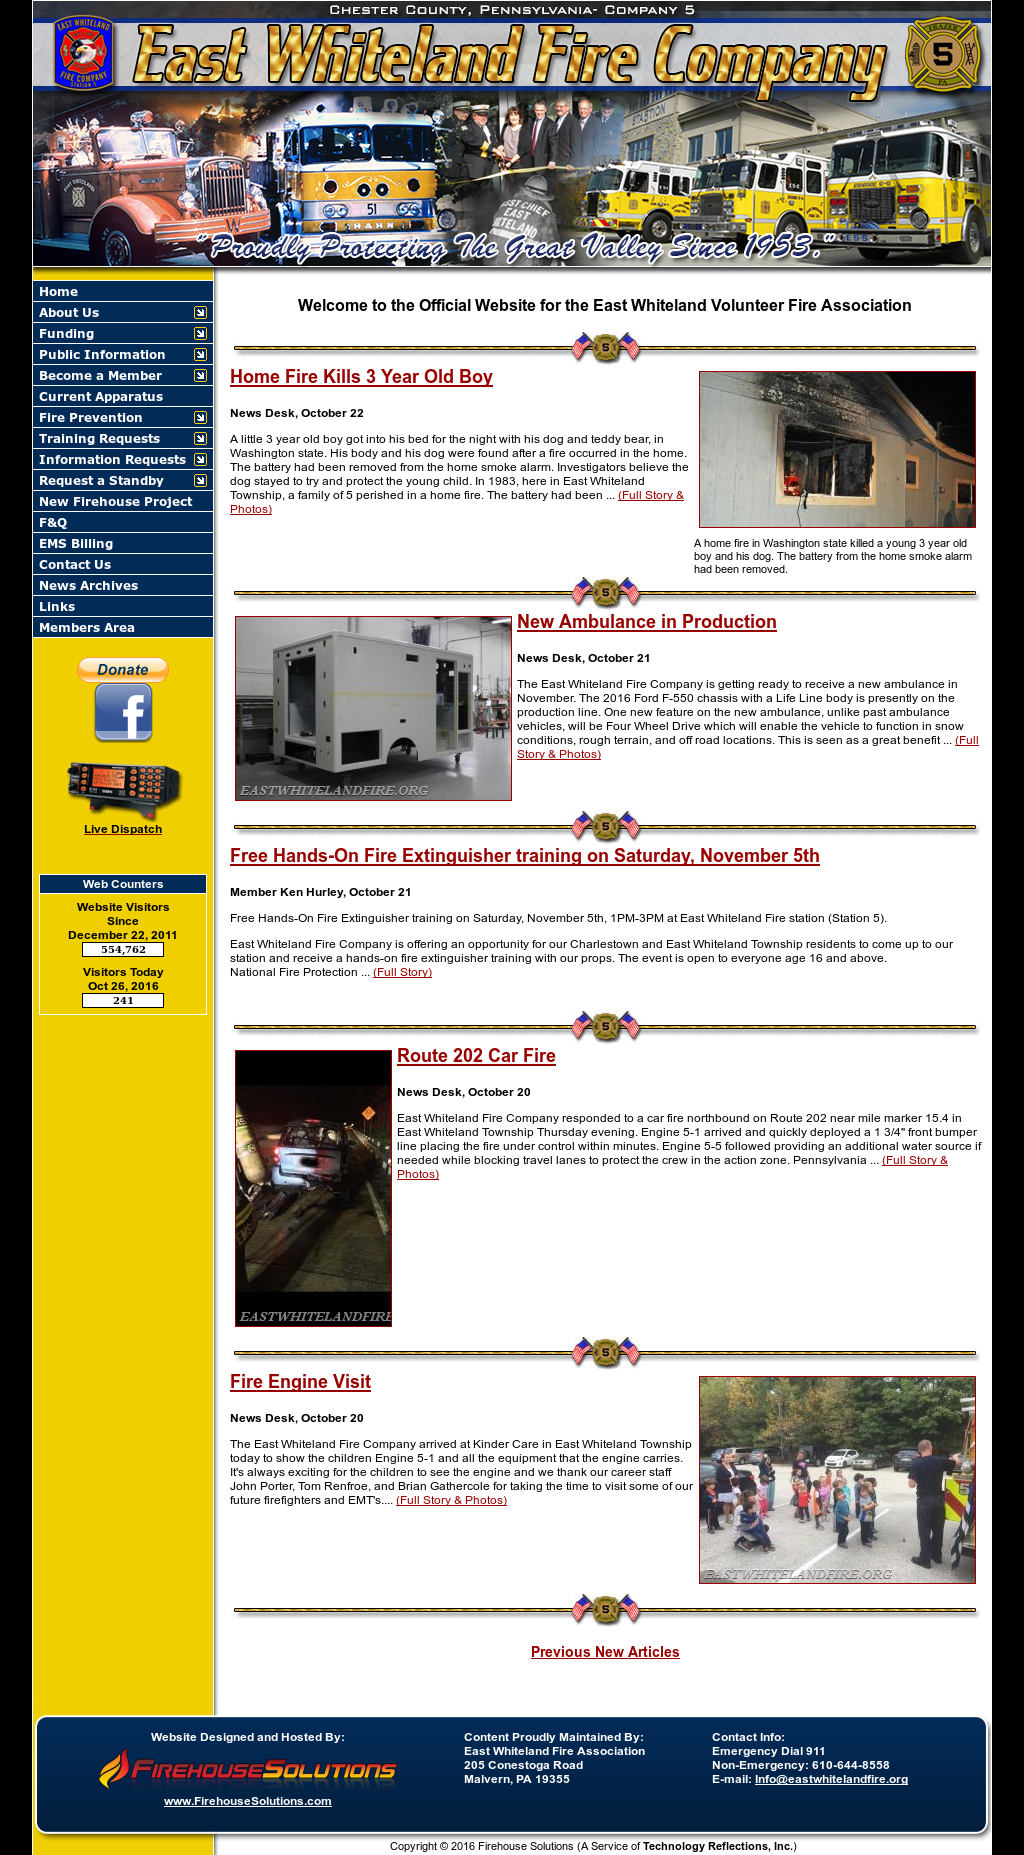 East Whiteland Fire Company Competitors, Revenue and